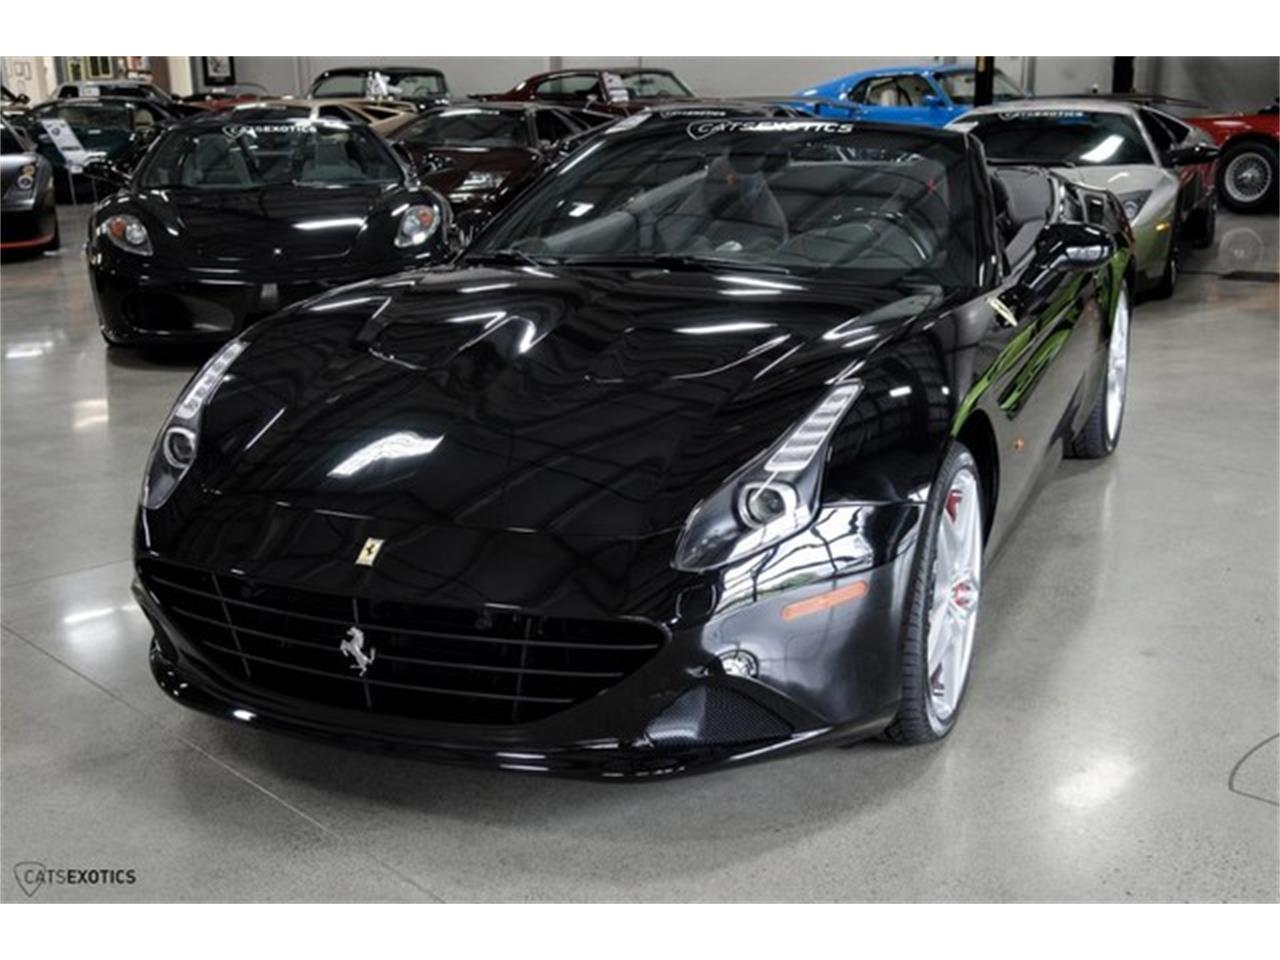 Large Picture of '16 Ferrari California located in Seattle Washington Auction Vehicle Offered by Cats Exotics - L63E